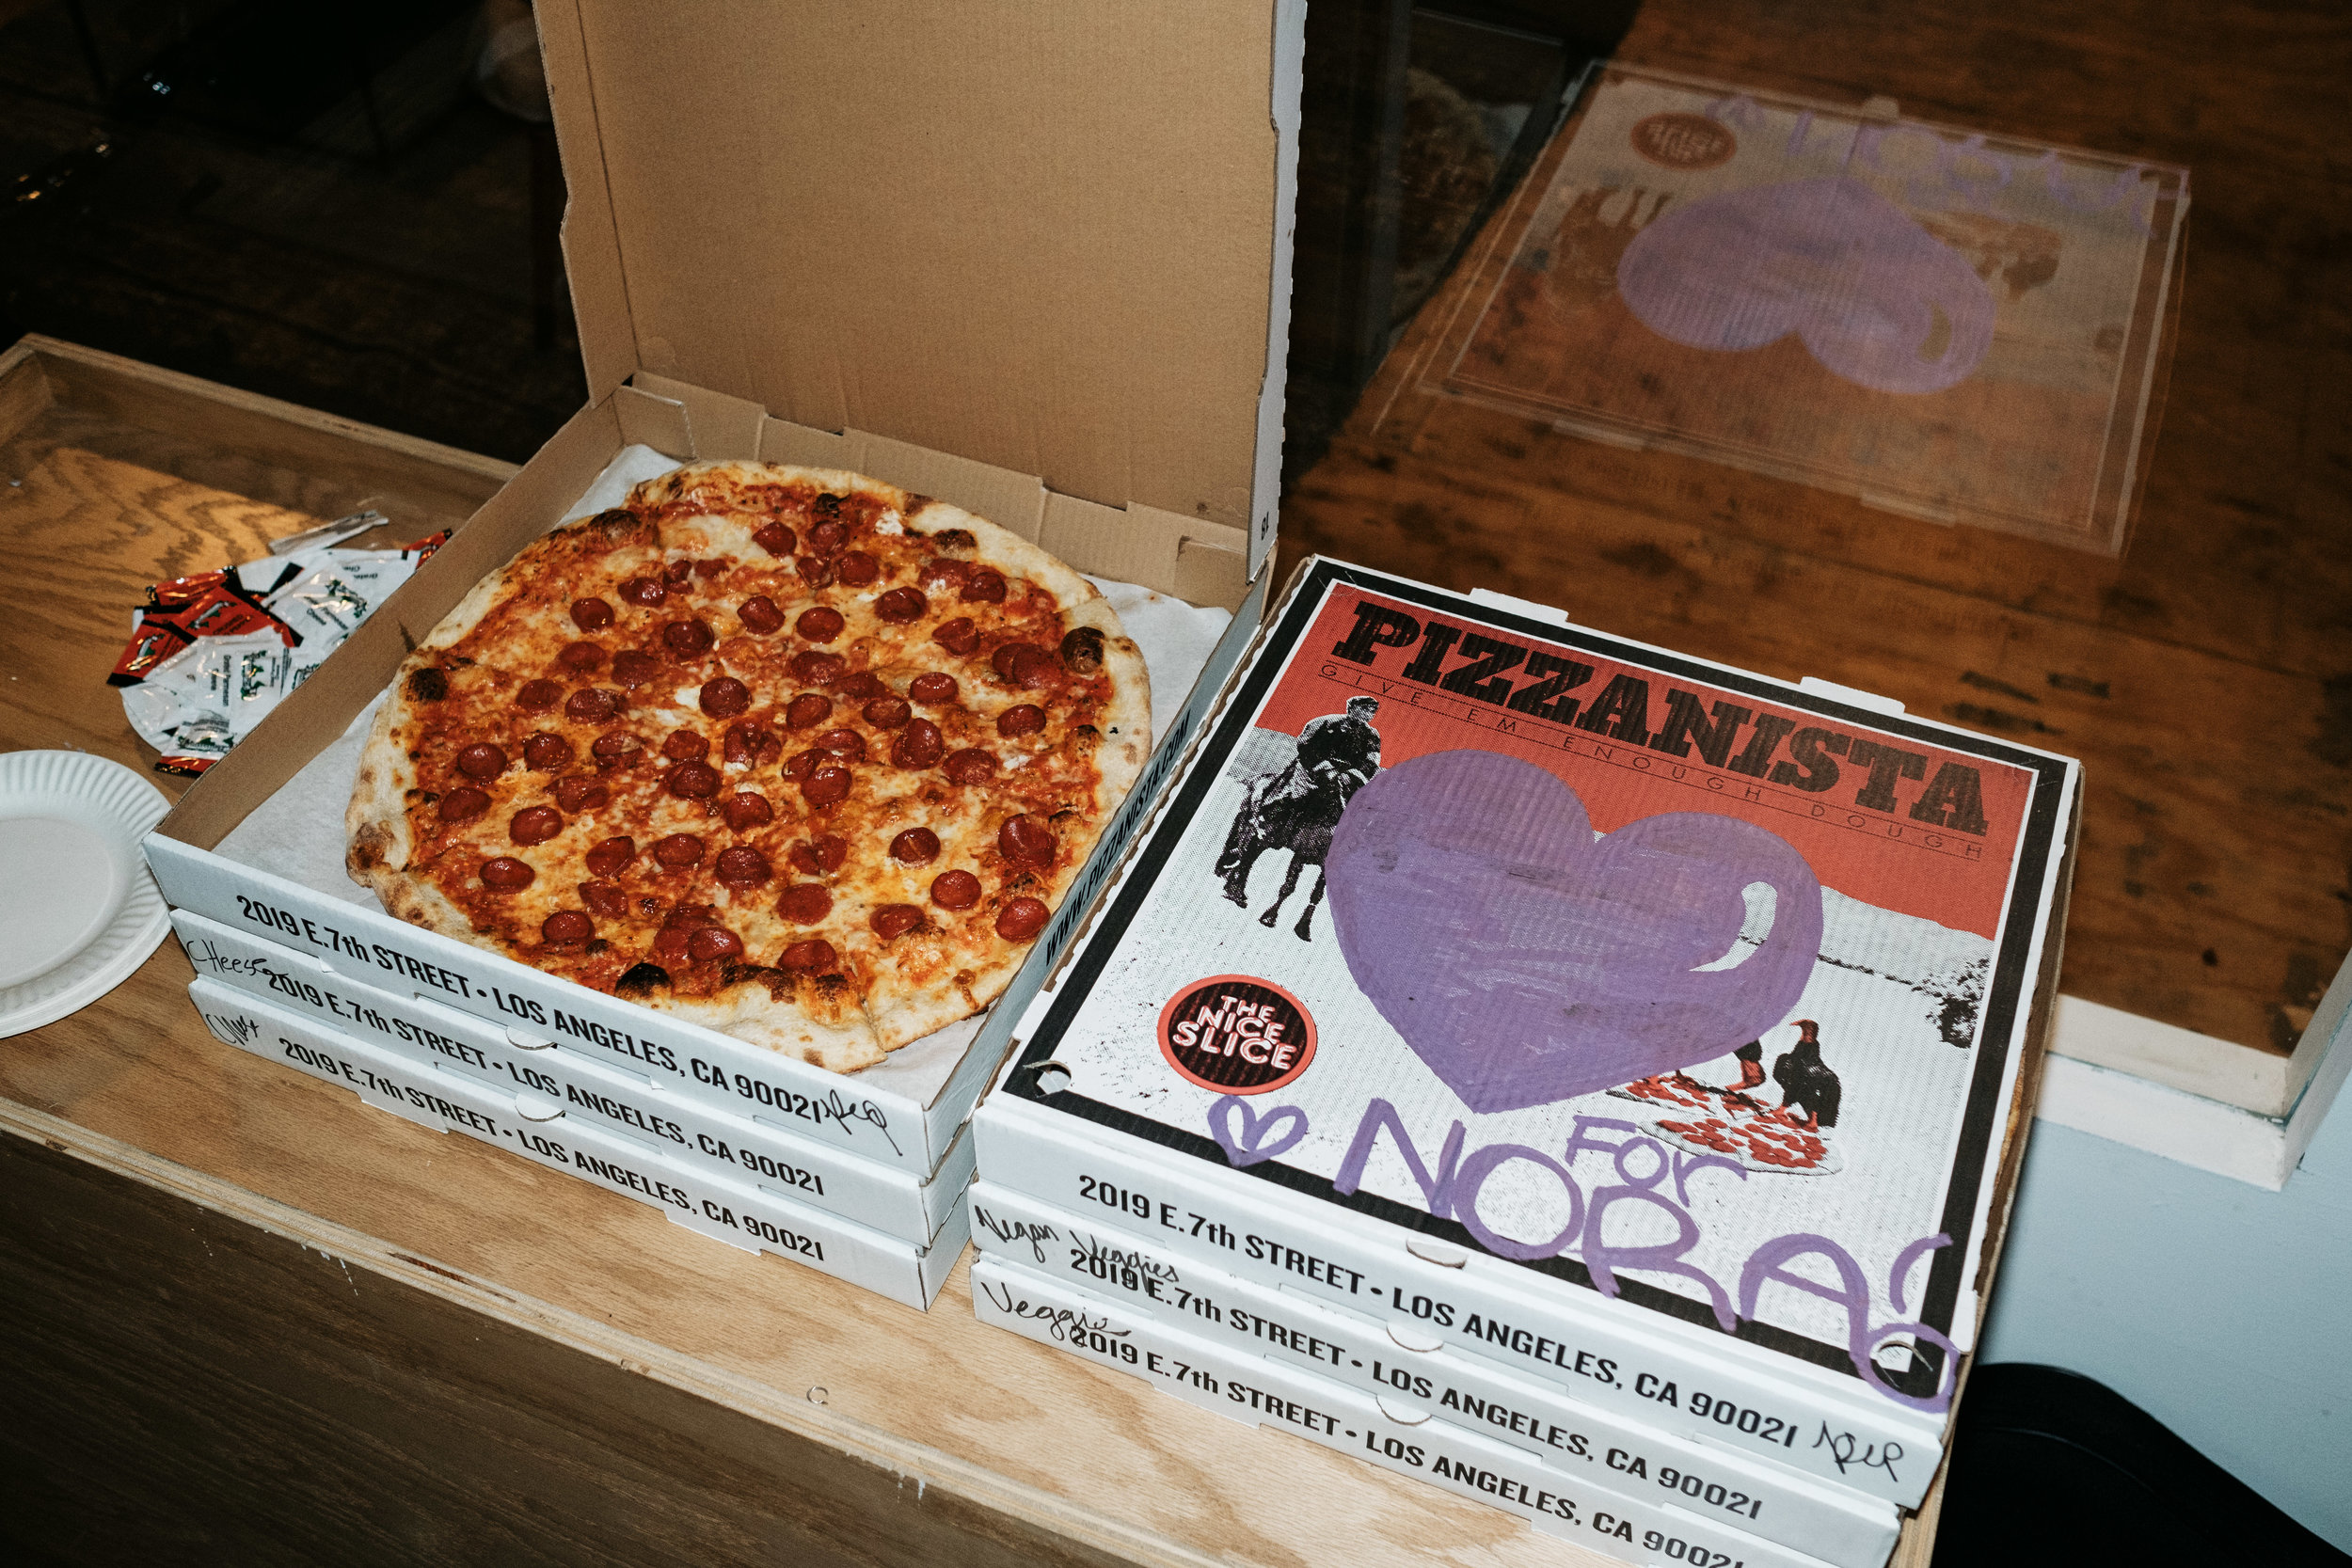 Pizzanista supplied the food to soak up all the free Pabst.